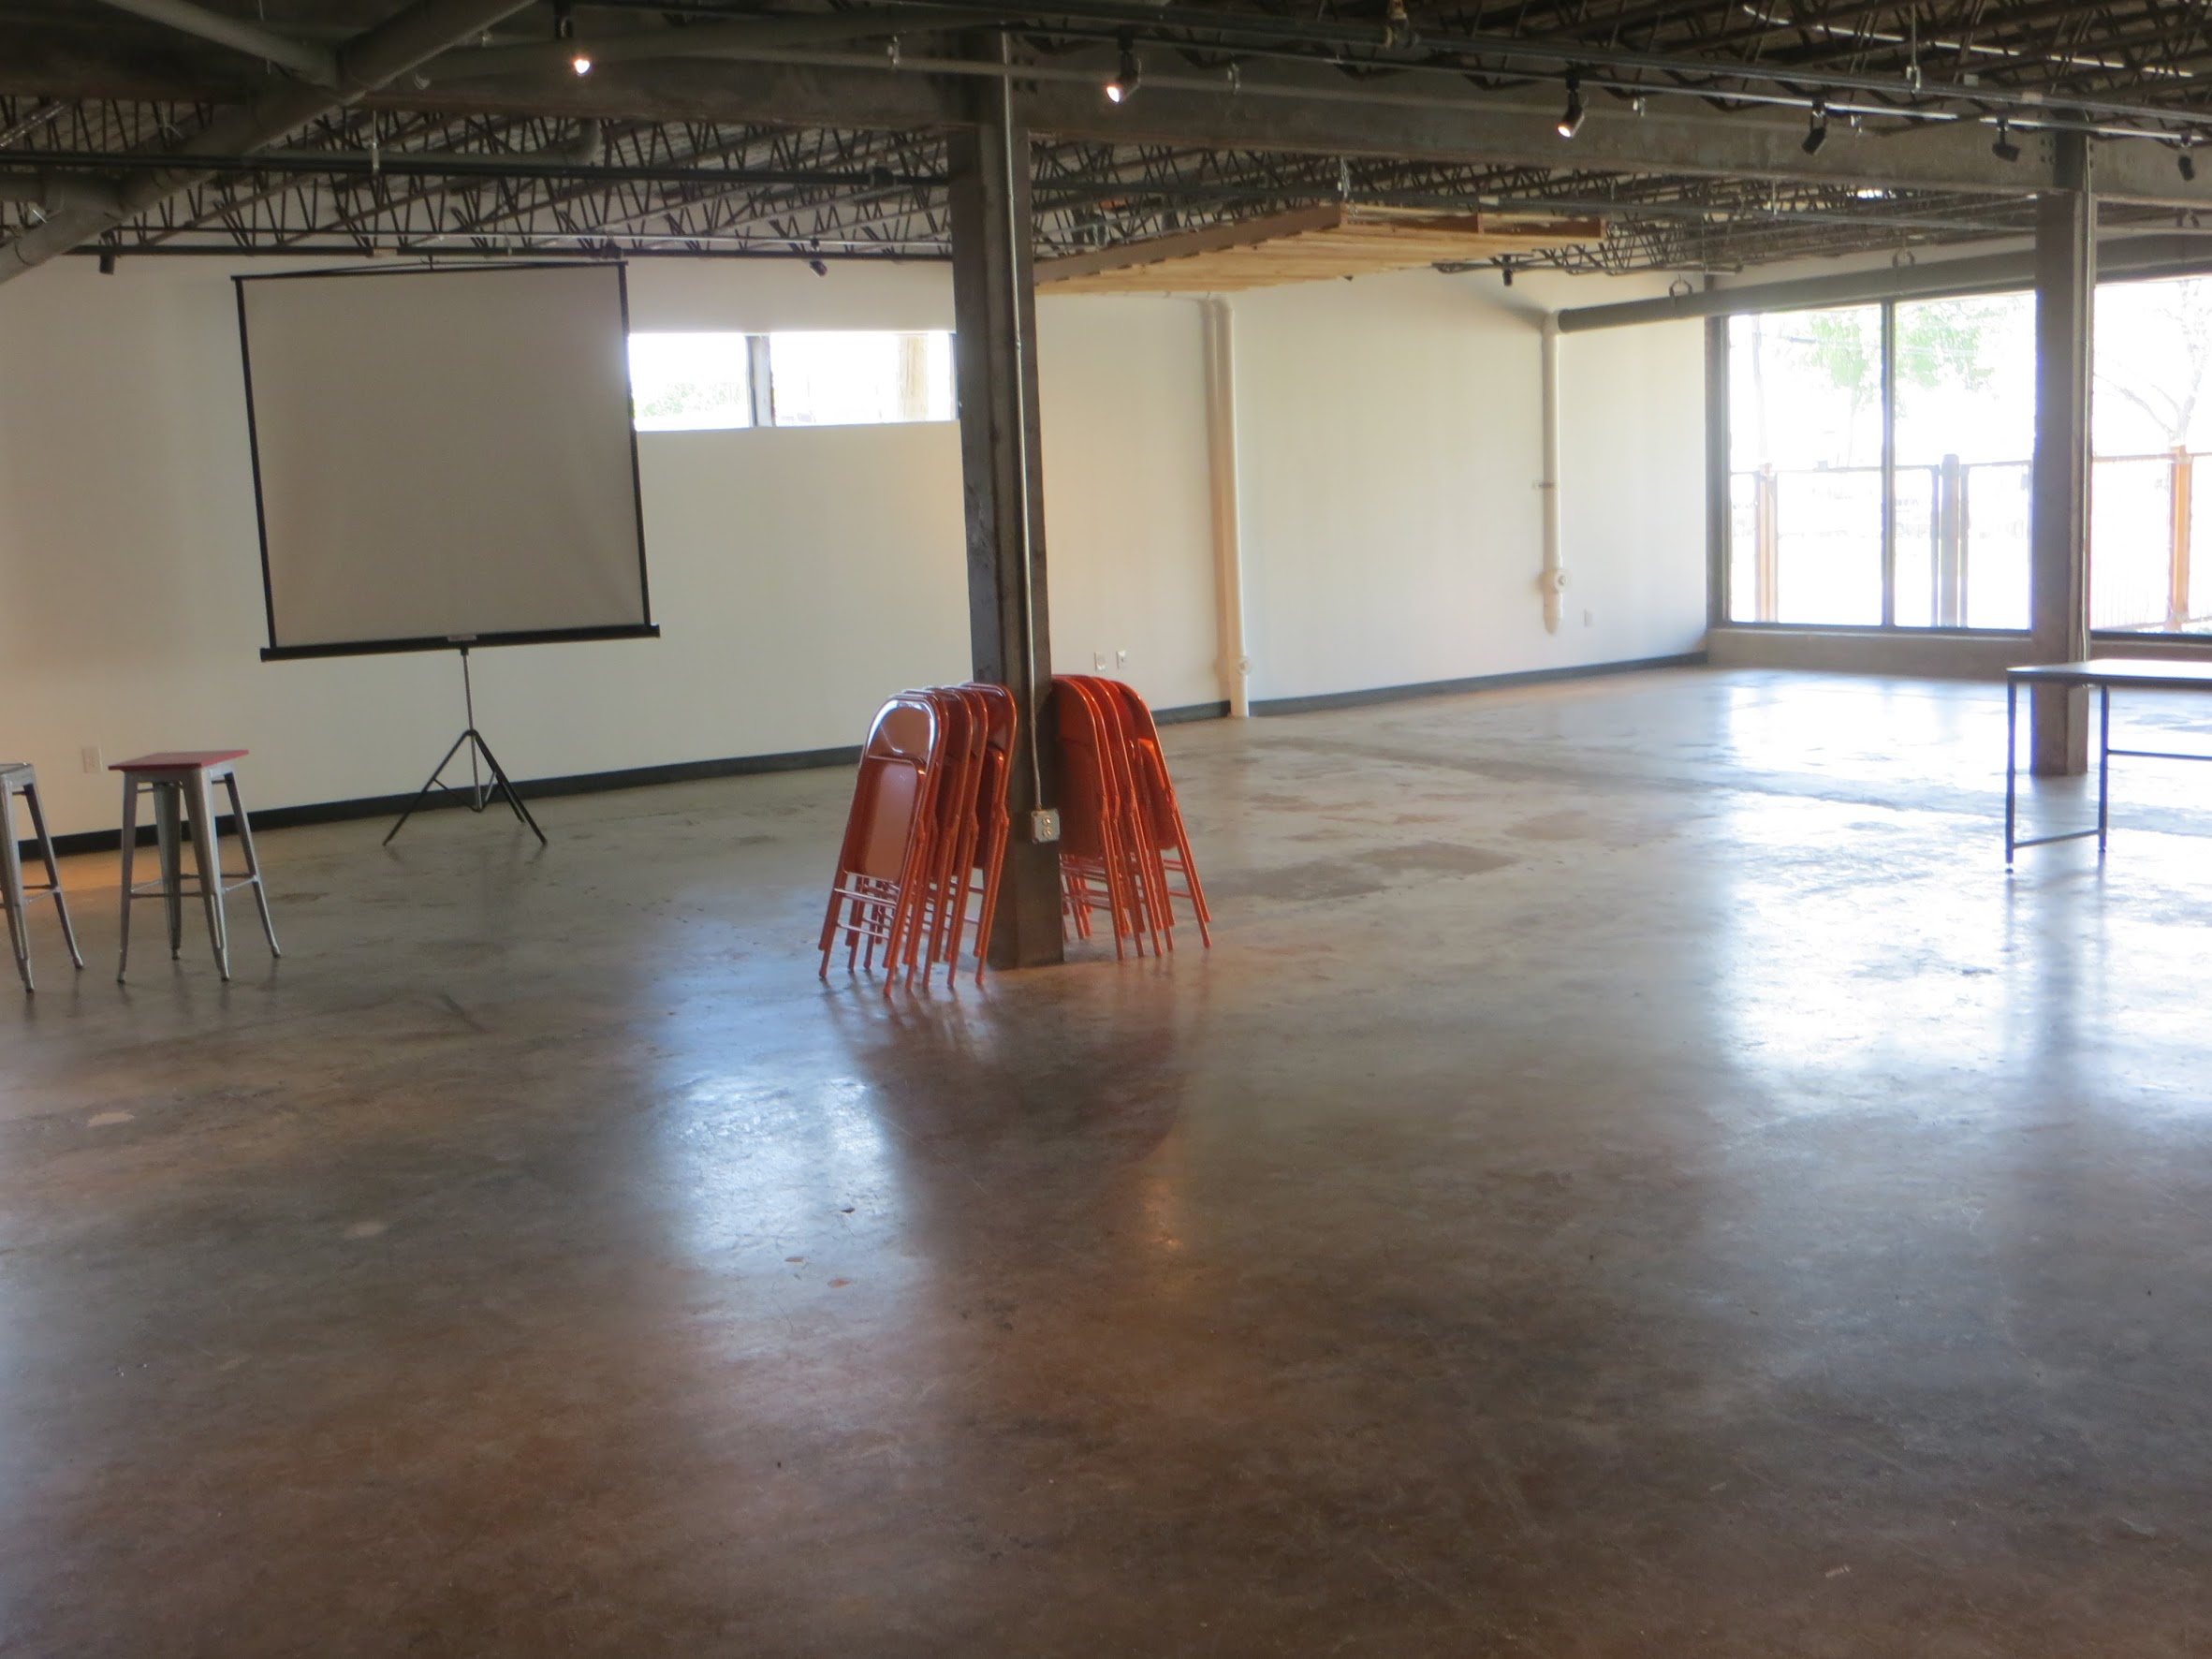 Here's one of the many areas that we will be able to host future graduations and other BridgeBuilders events in.